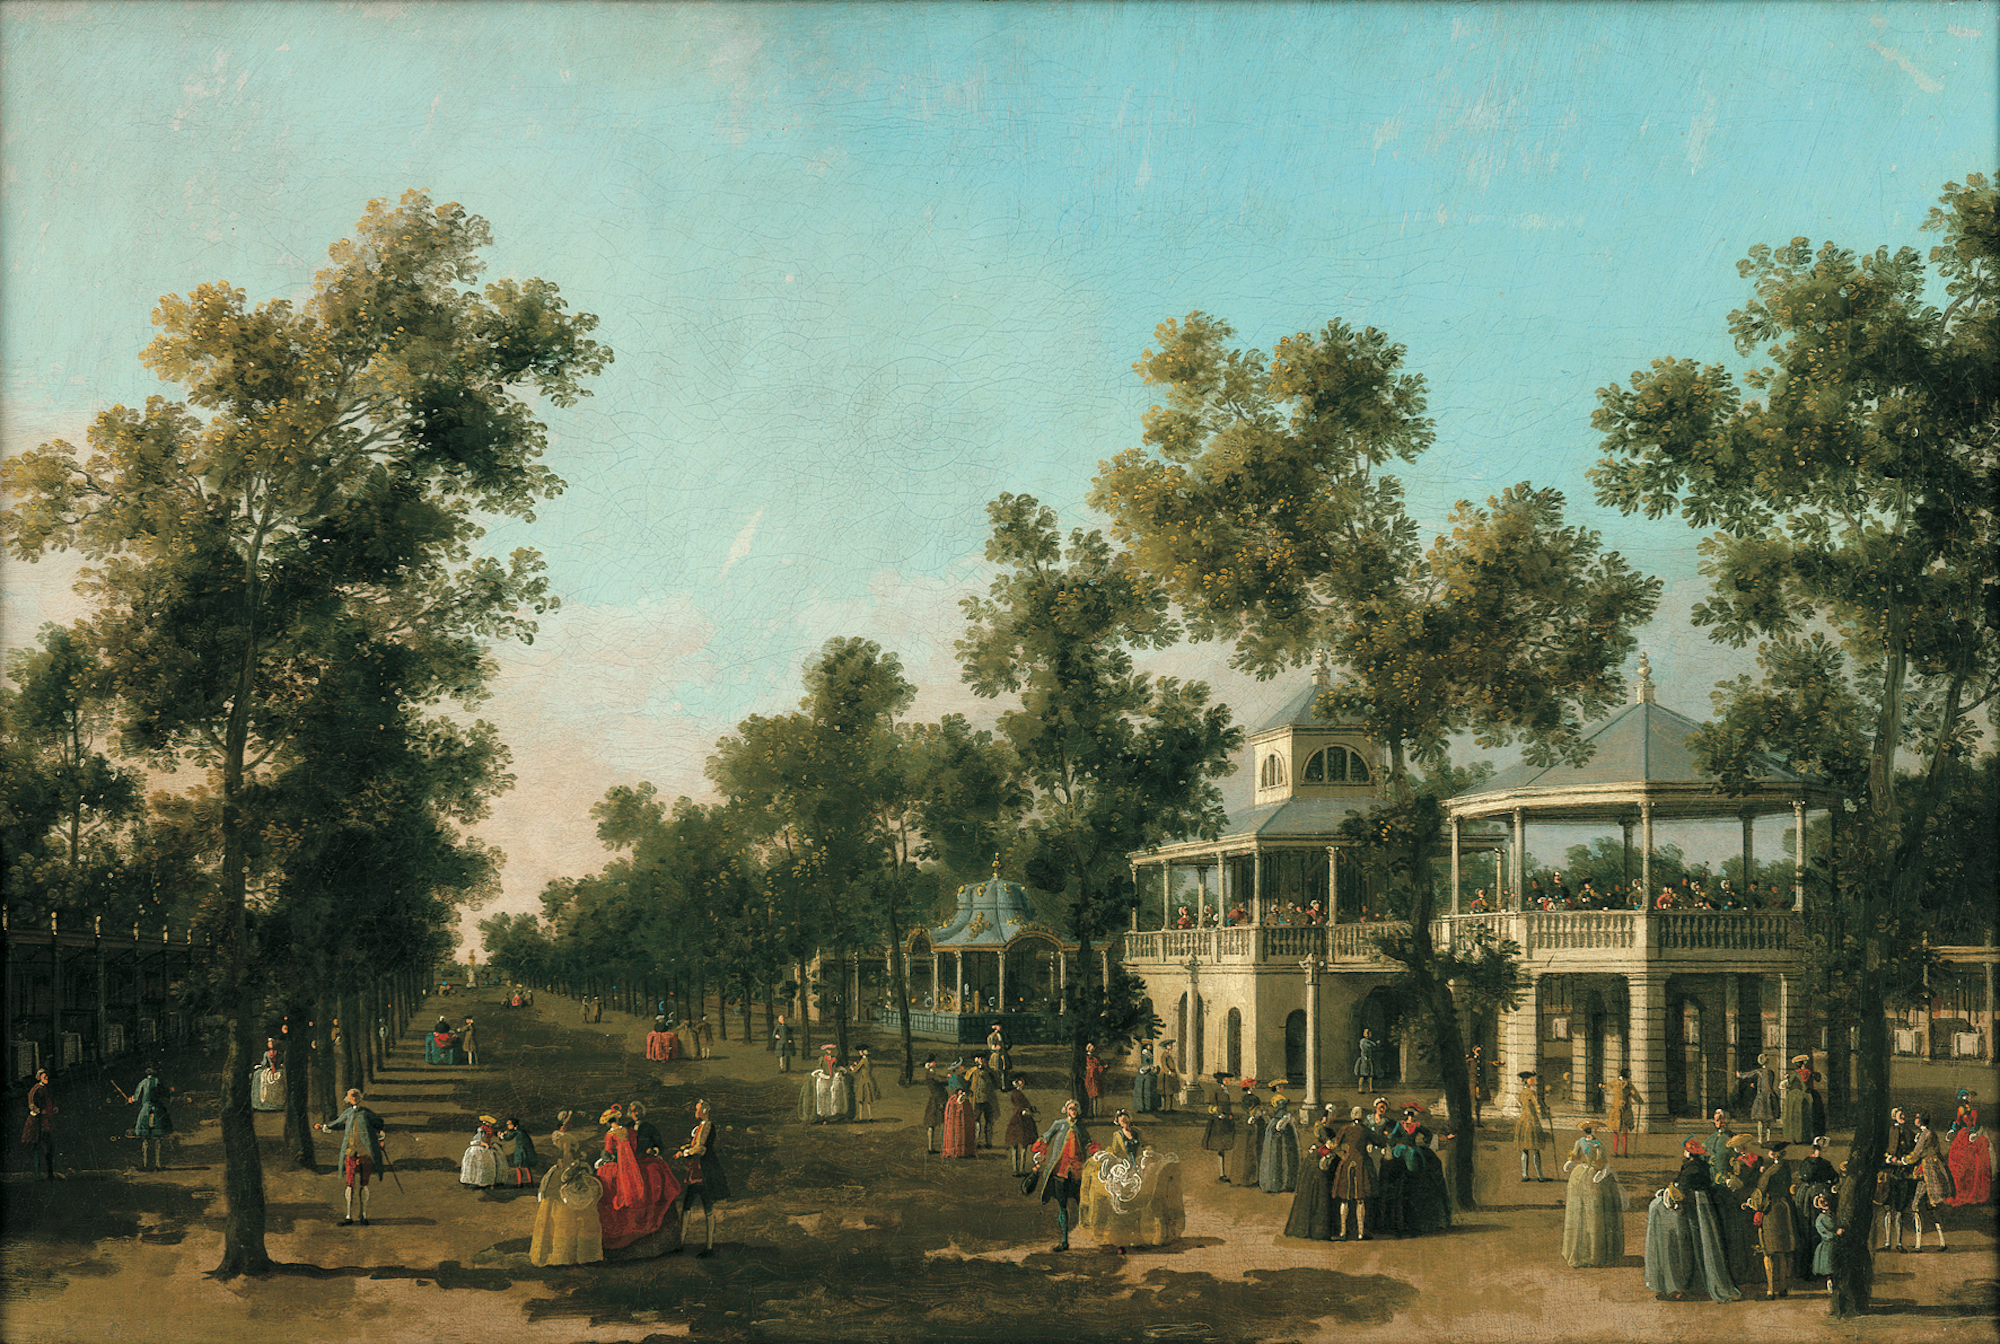 Canaletto, The Grand Walk Vauxhall Gardens, 1751